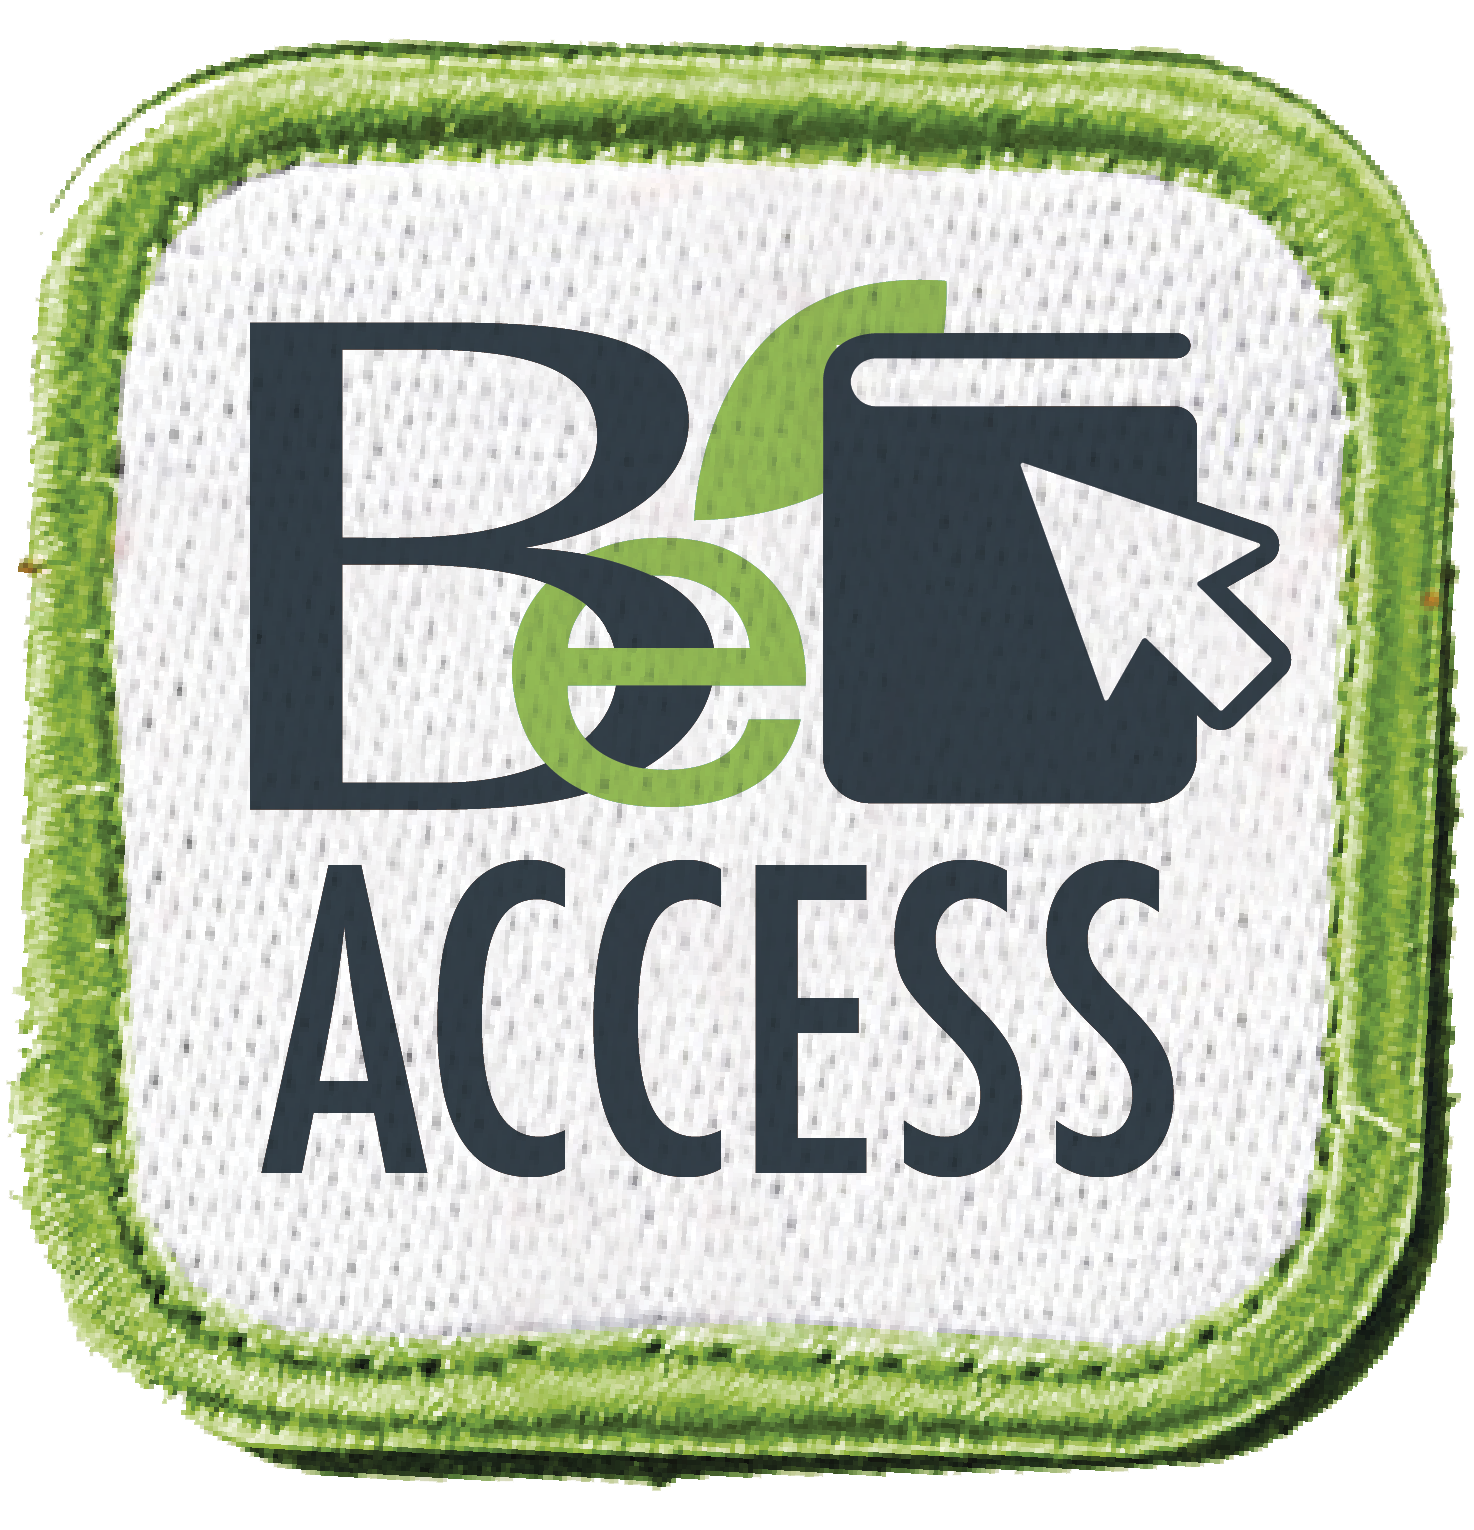 BE ACCESS.png